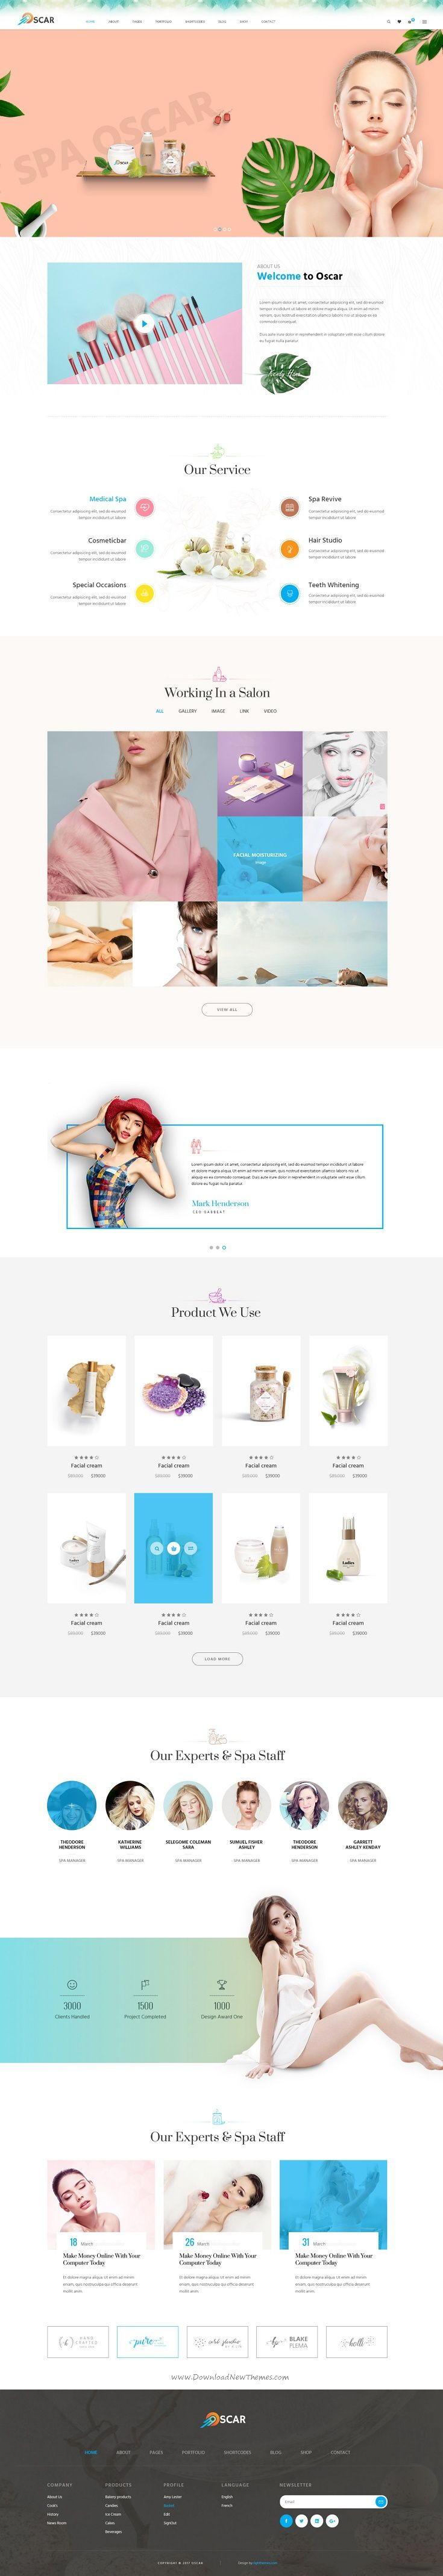 Oscar is a creative & modern multipurpose #PSD template for stunning #cosmetics shop website with 6 unique homepage, 9 Portfolio, 7 Shop layouts and 74 layered PSD files download now > https://themeforest.net/item/oscar-multipurpose-psd-template/19912272?ref=Datasata